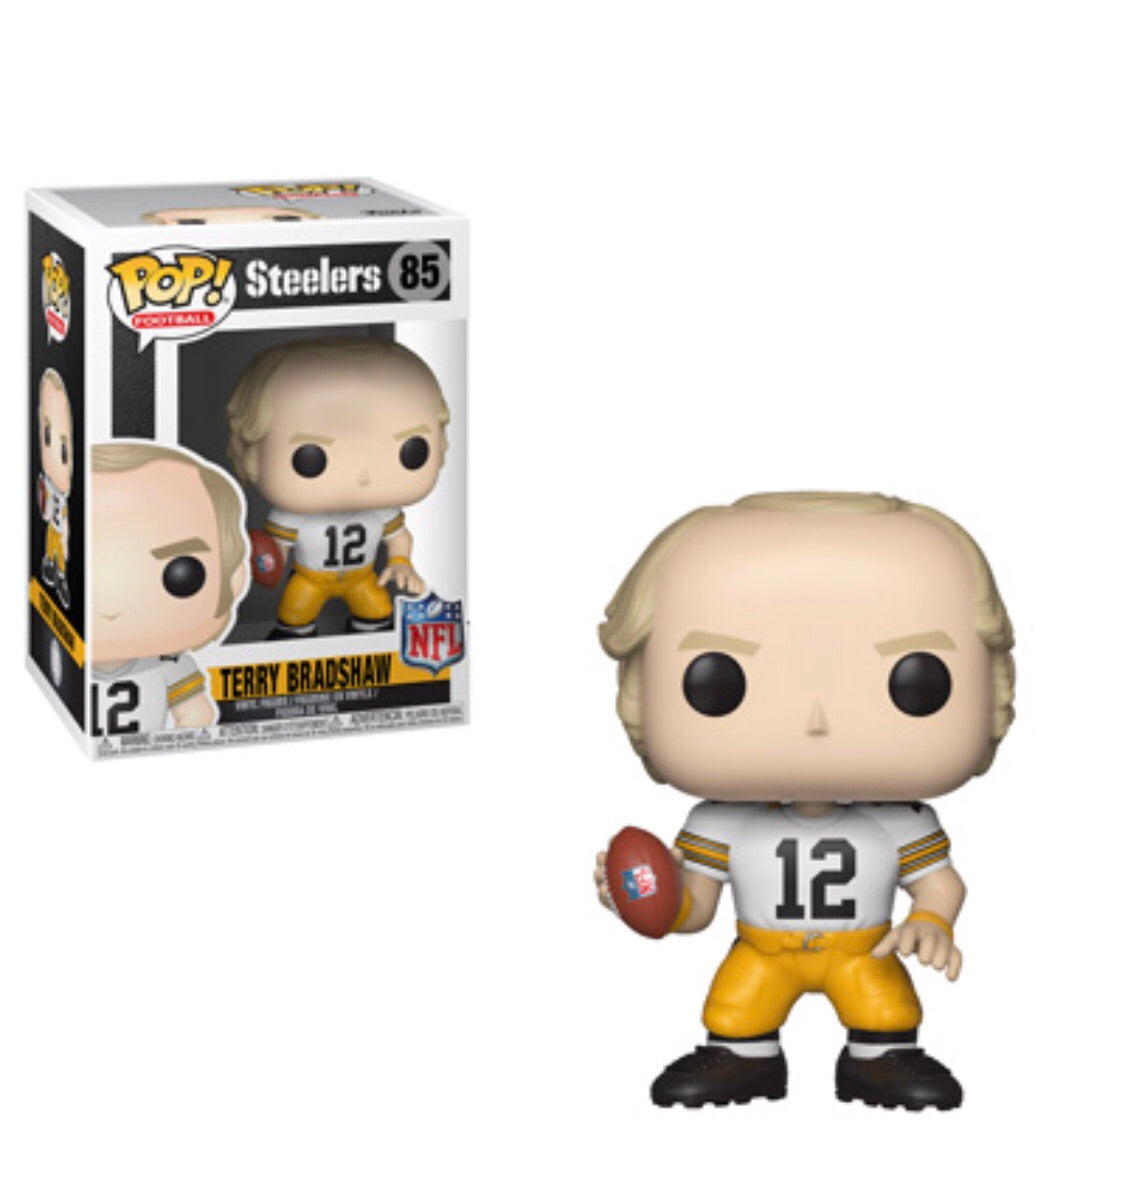 Pop! NFL Legends Terry Bradshaw